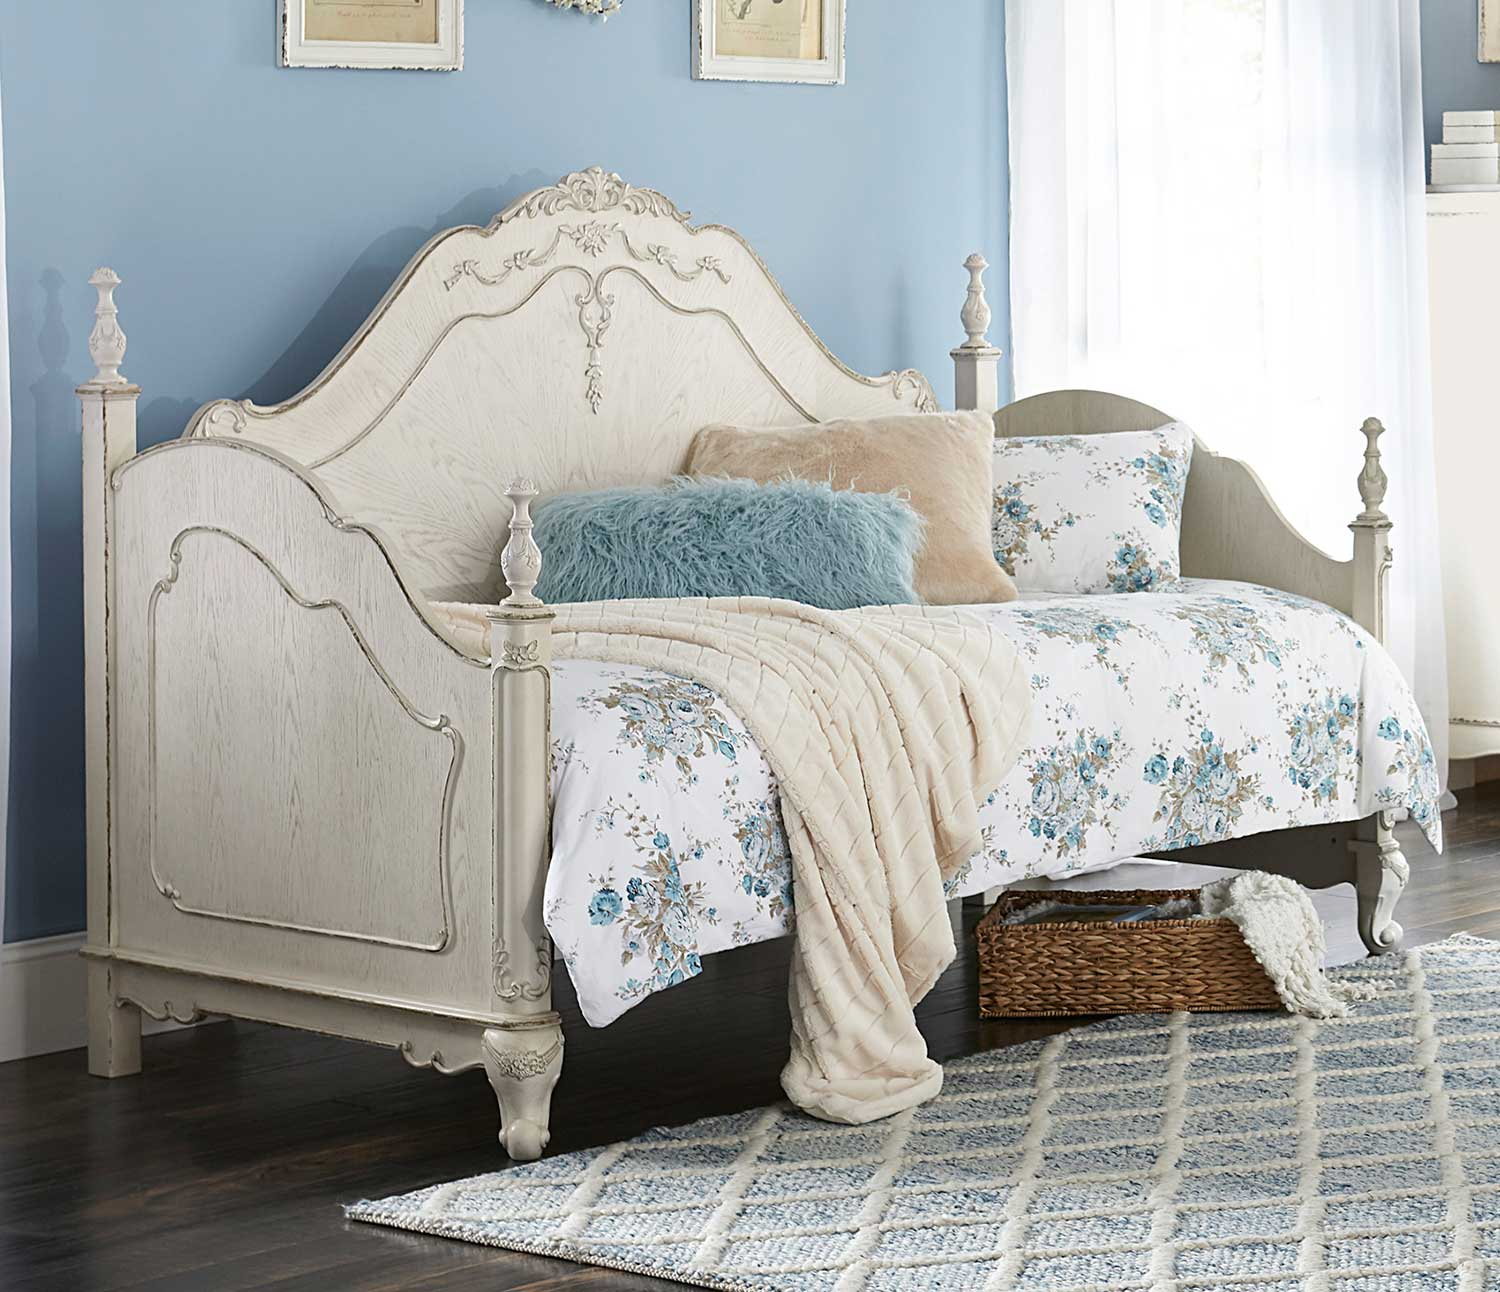 Homelegance Cinderella Daybed - Antique White with Gray Rub-Through